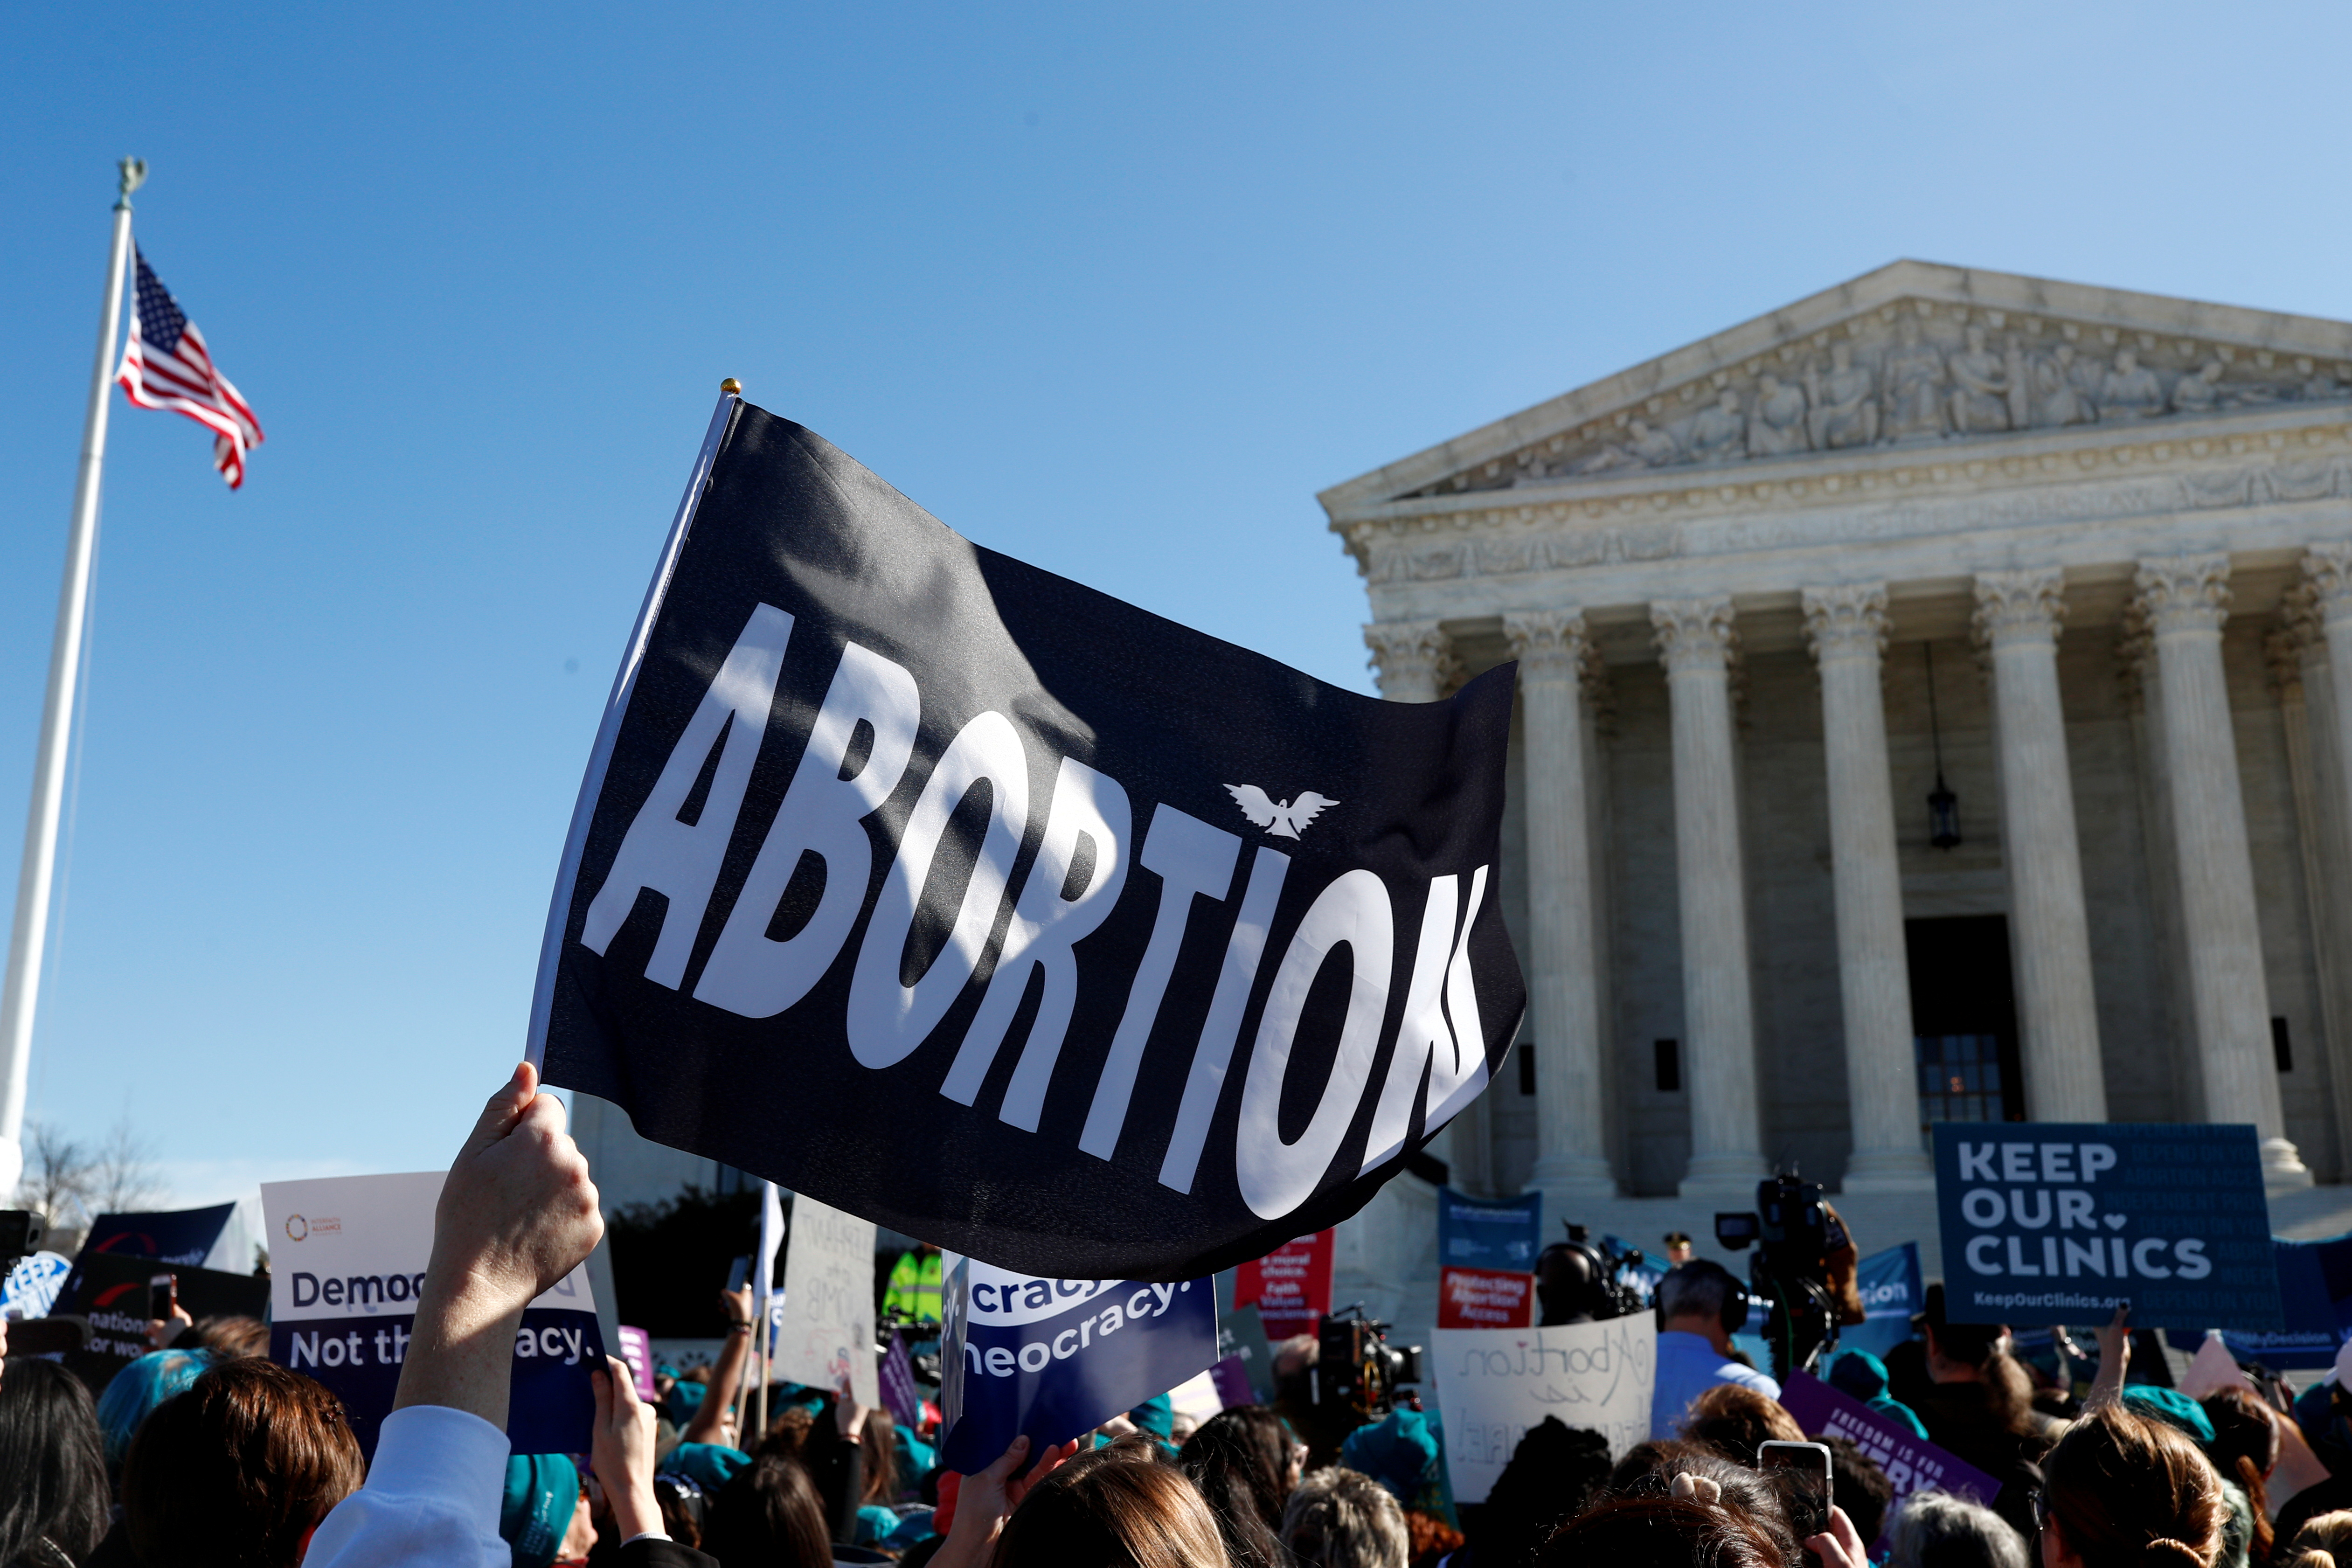 A demonstrator holds up an abortion flag outside of the U.S. Supreme Court as justices hear a major abortion case on the legality of a Republican-backed Louisiana law that imposes restrictions on abortion doctors, on Capitol Hill in Washington, U.S., March 4, 2020.  REUTERS/Tom Brenner/File Photo